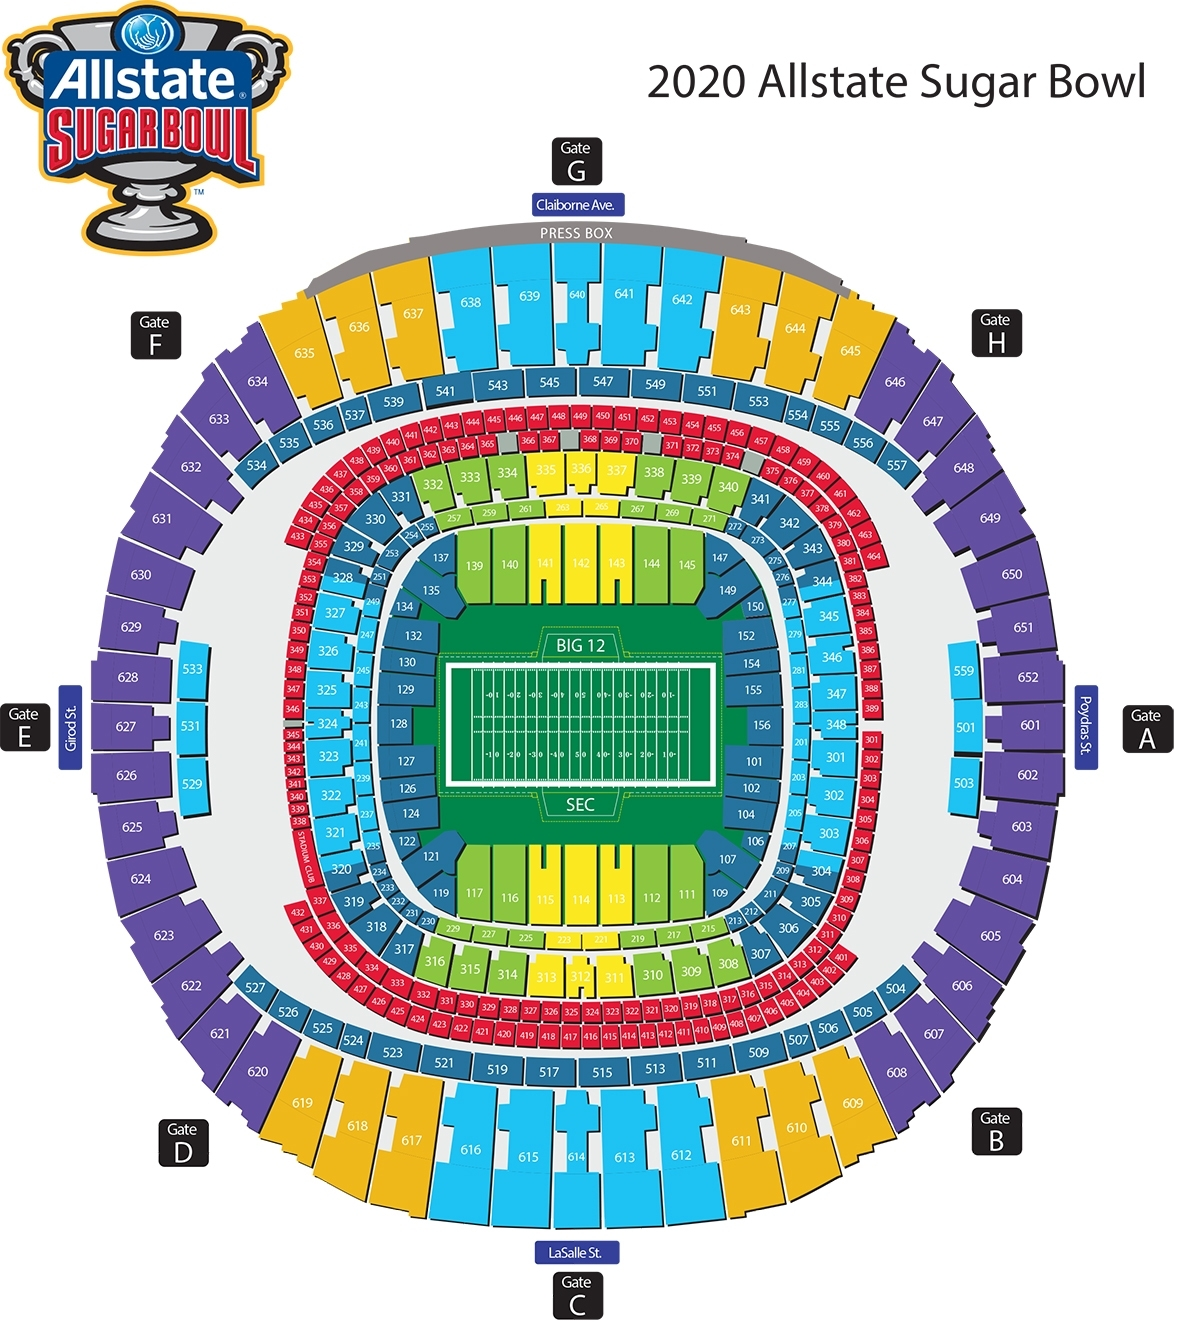 Seating Diagram - Official Site Of The Allstate Sugar Bowl for Seating Chart For Super Bowl